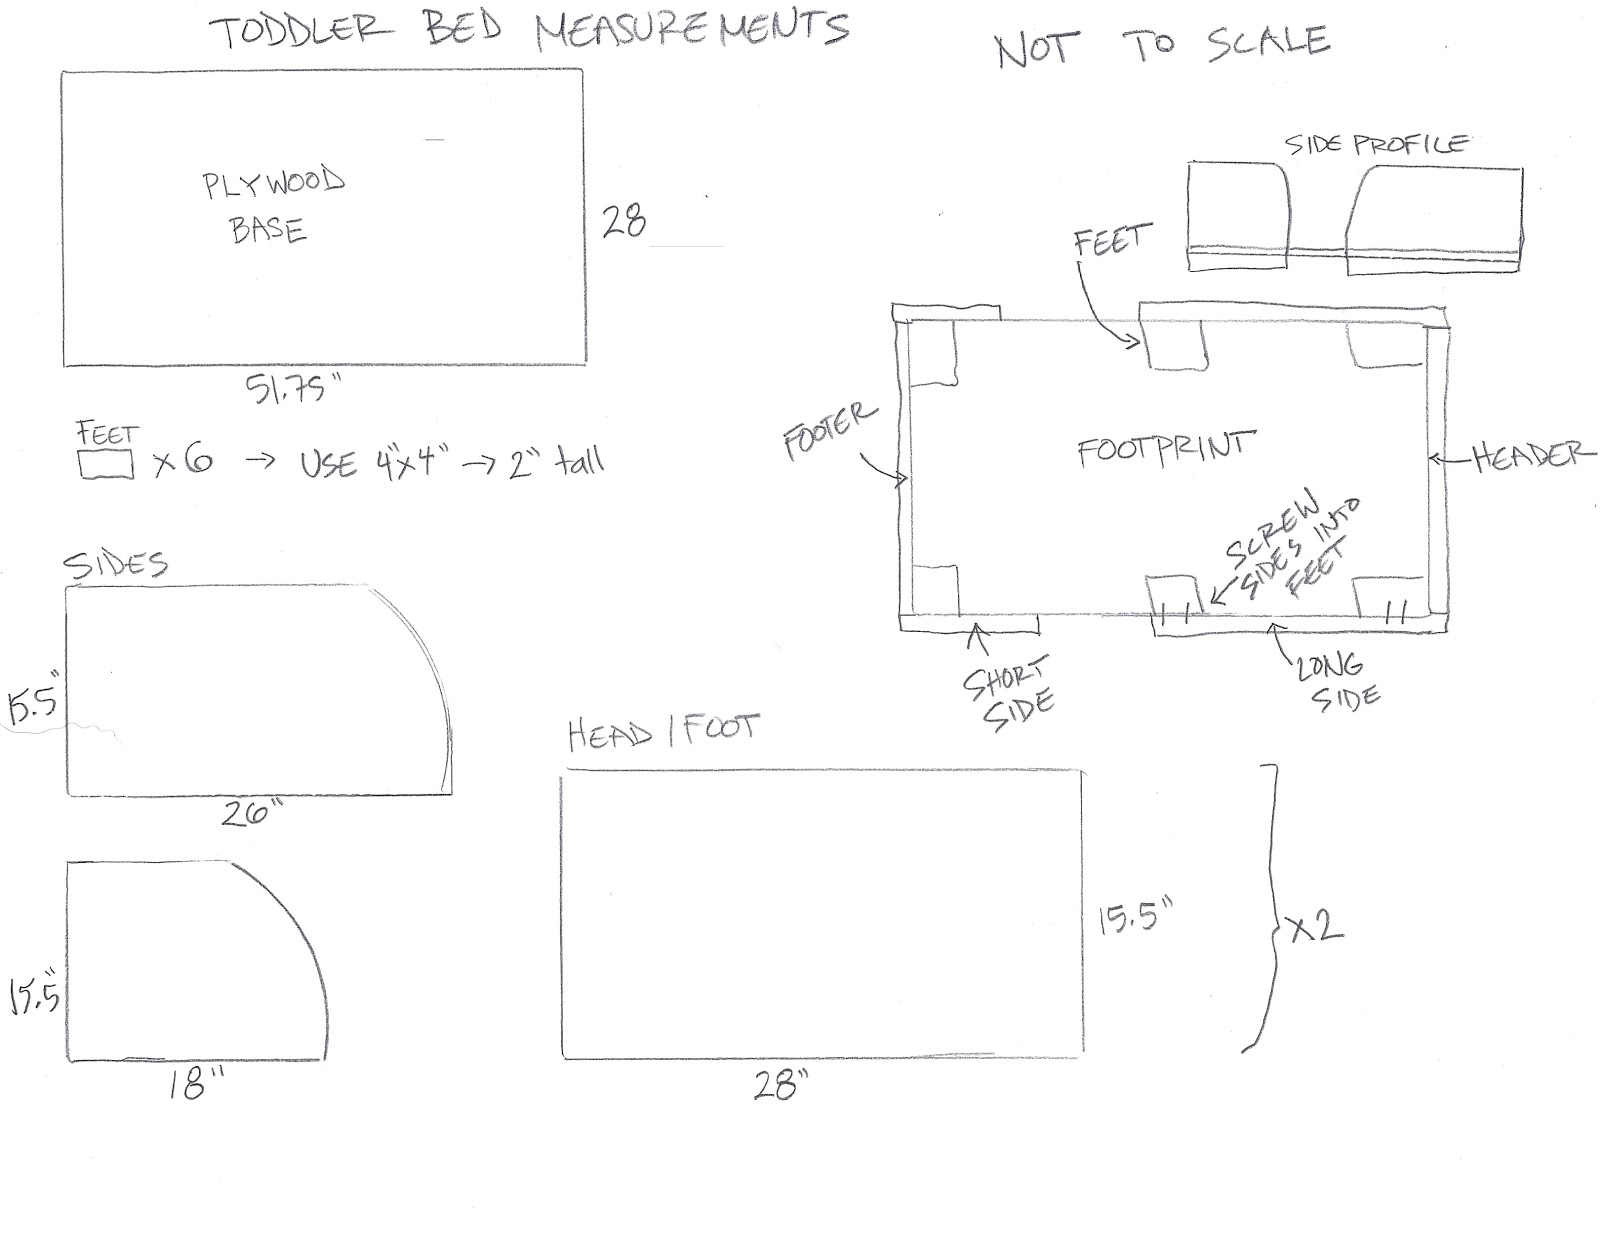 Toddler Bed Dimensions Changes: 5 Actionable Tips